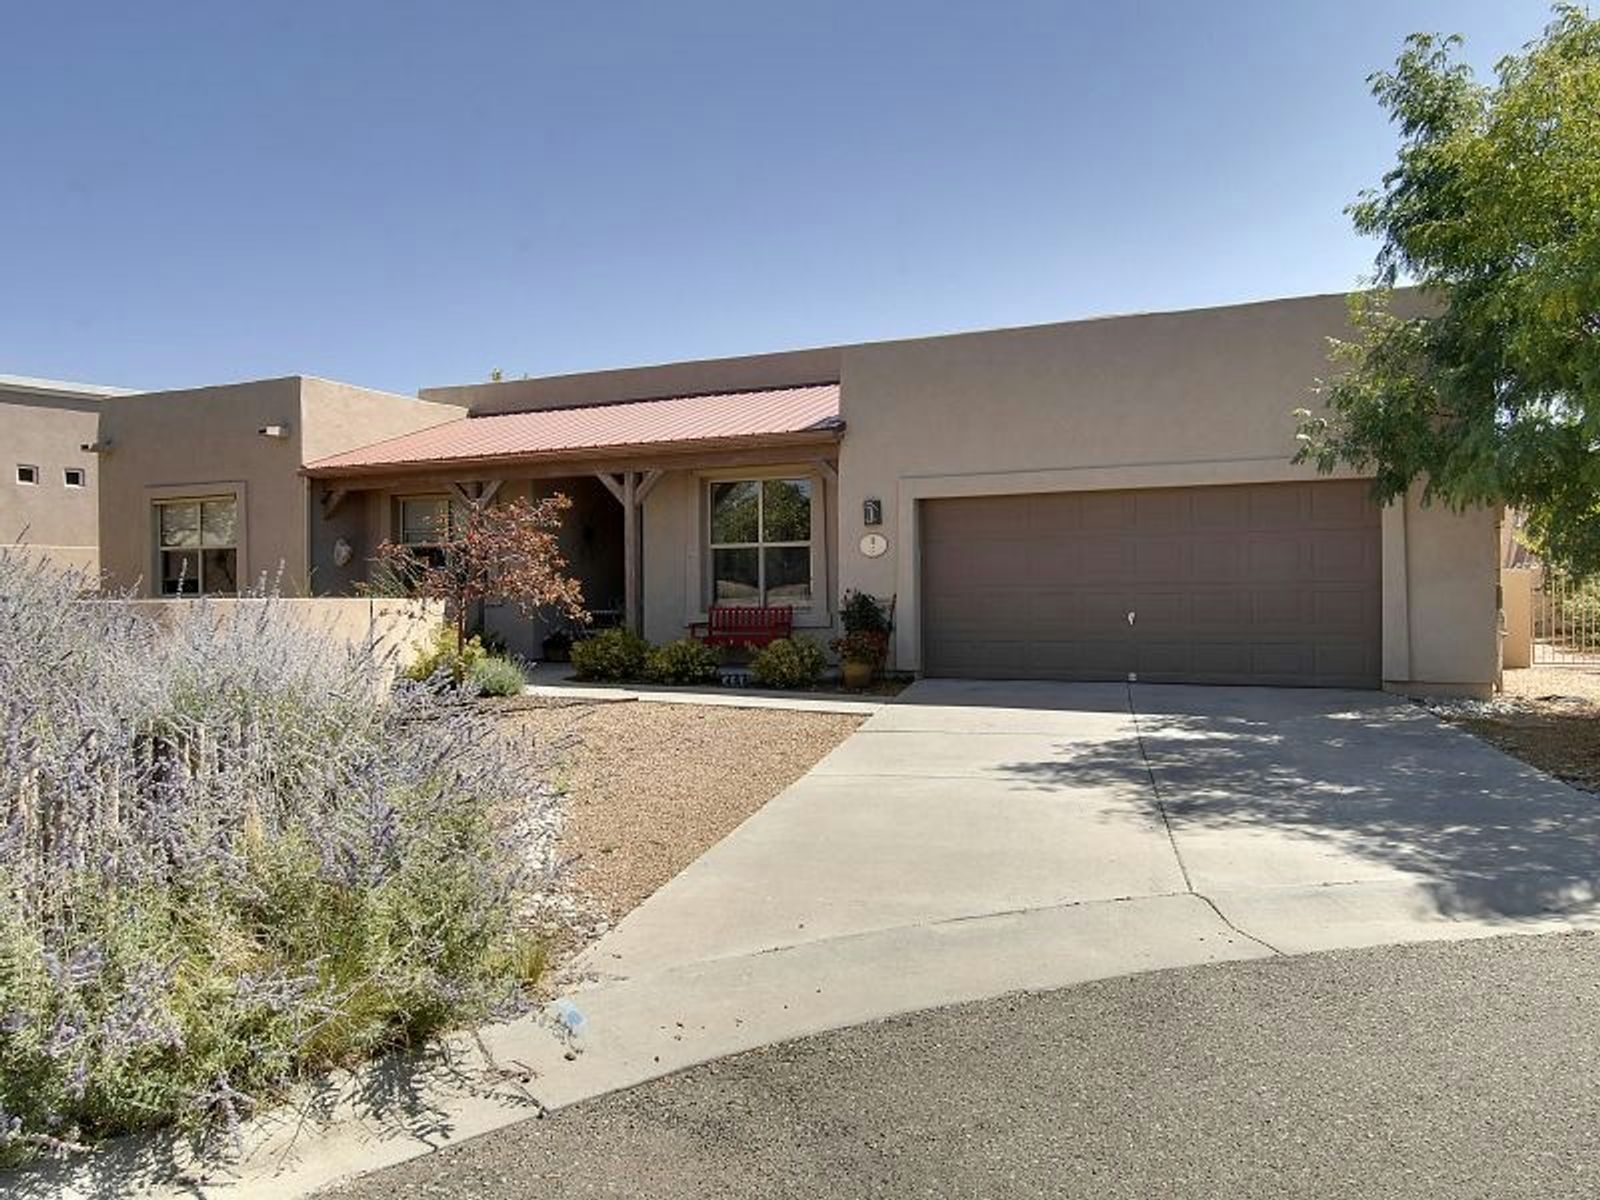 5 Conestoga Trail, Santa Fe NM Single Family Home - Santa Fe Real Estate